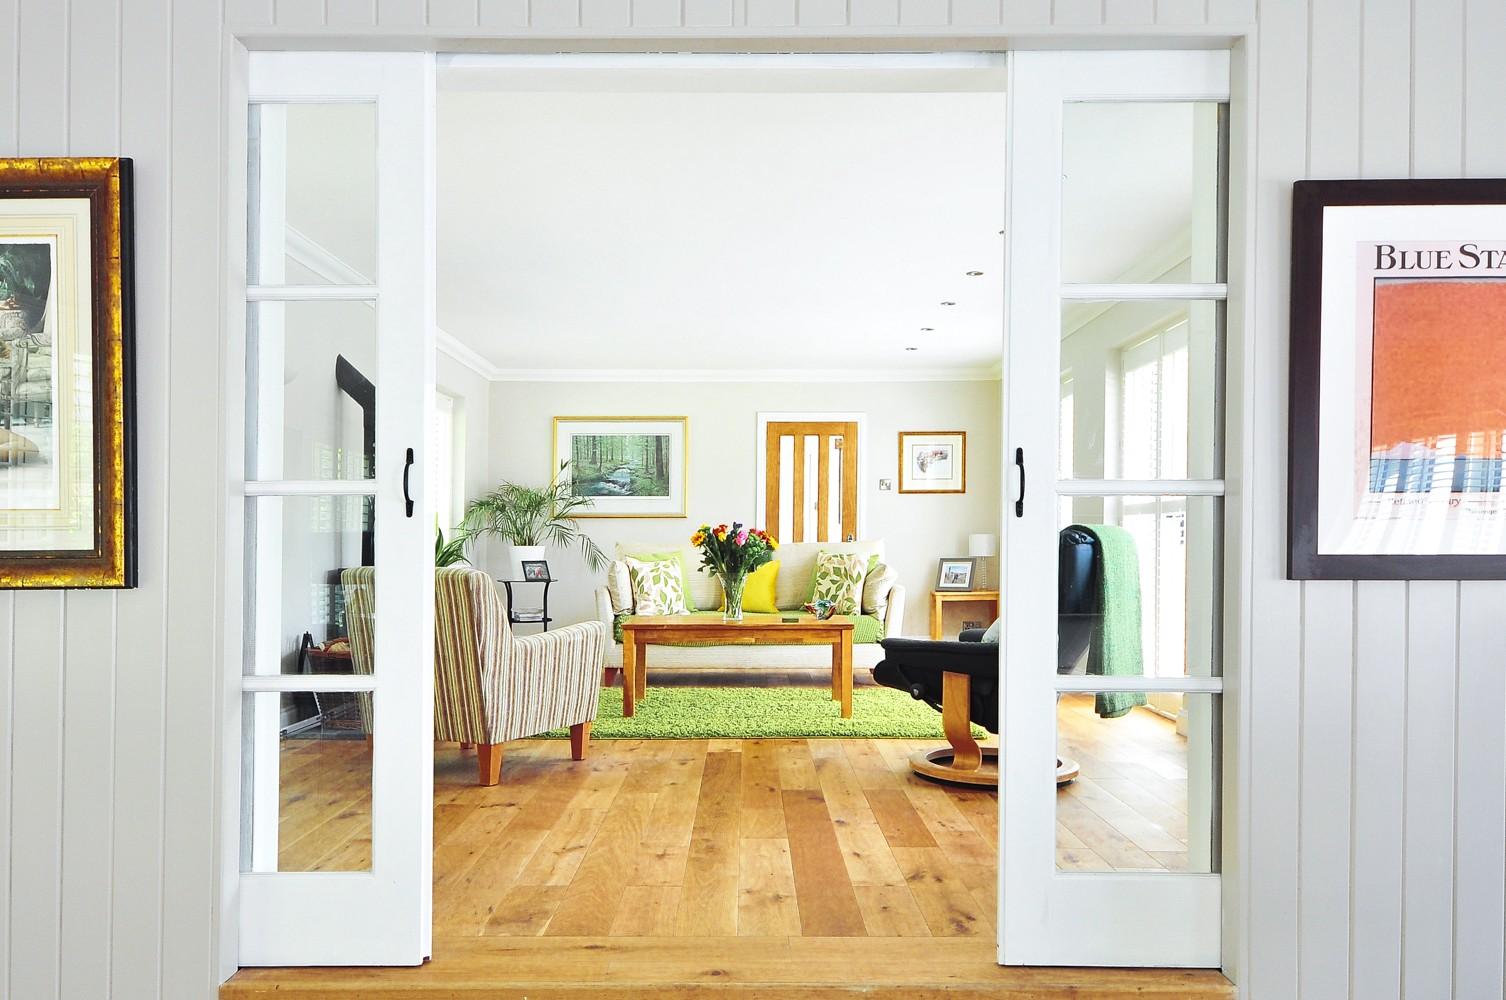 5 Small Home Improvements That Make A Big Difference